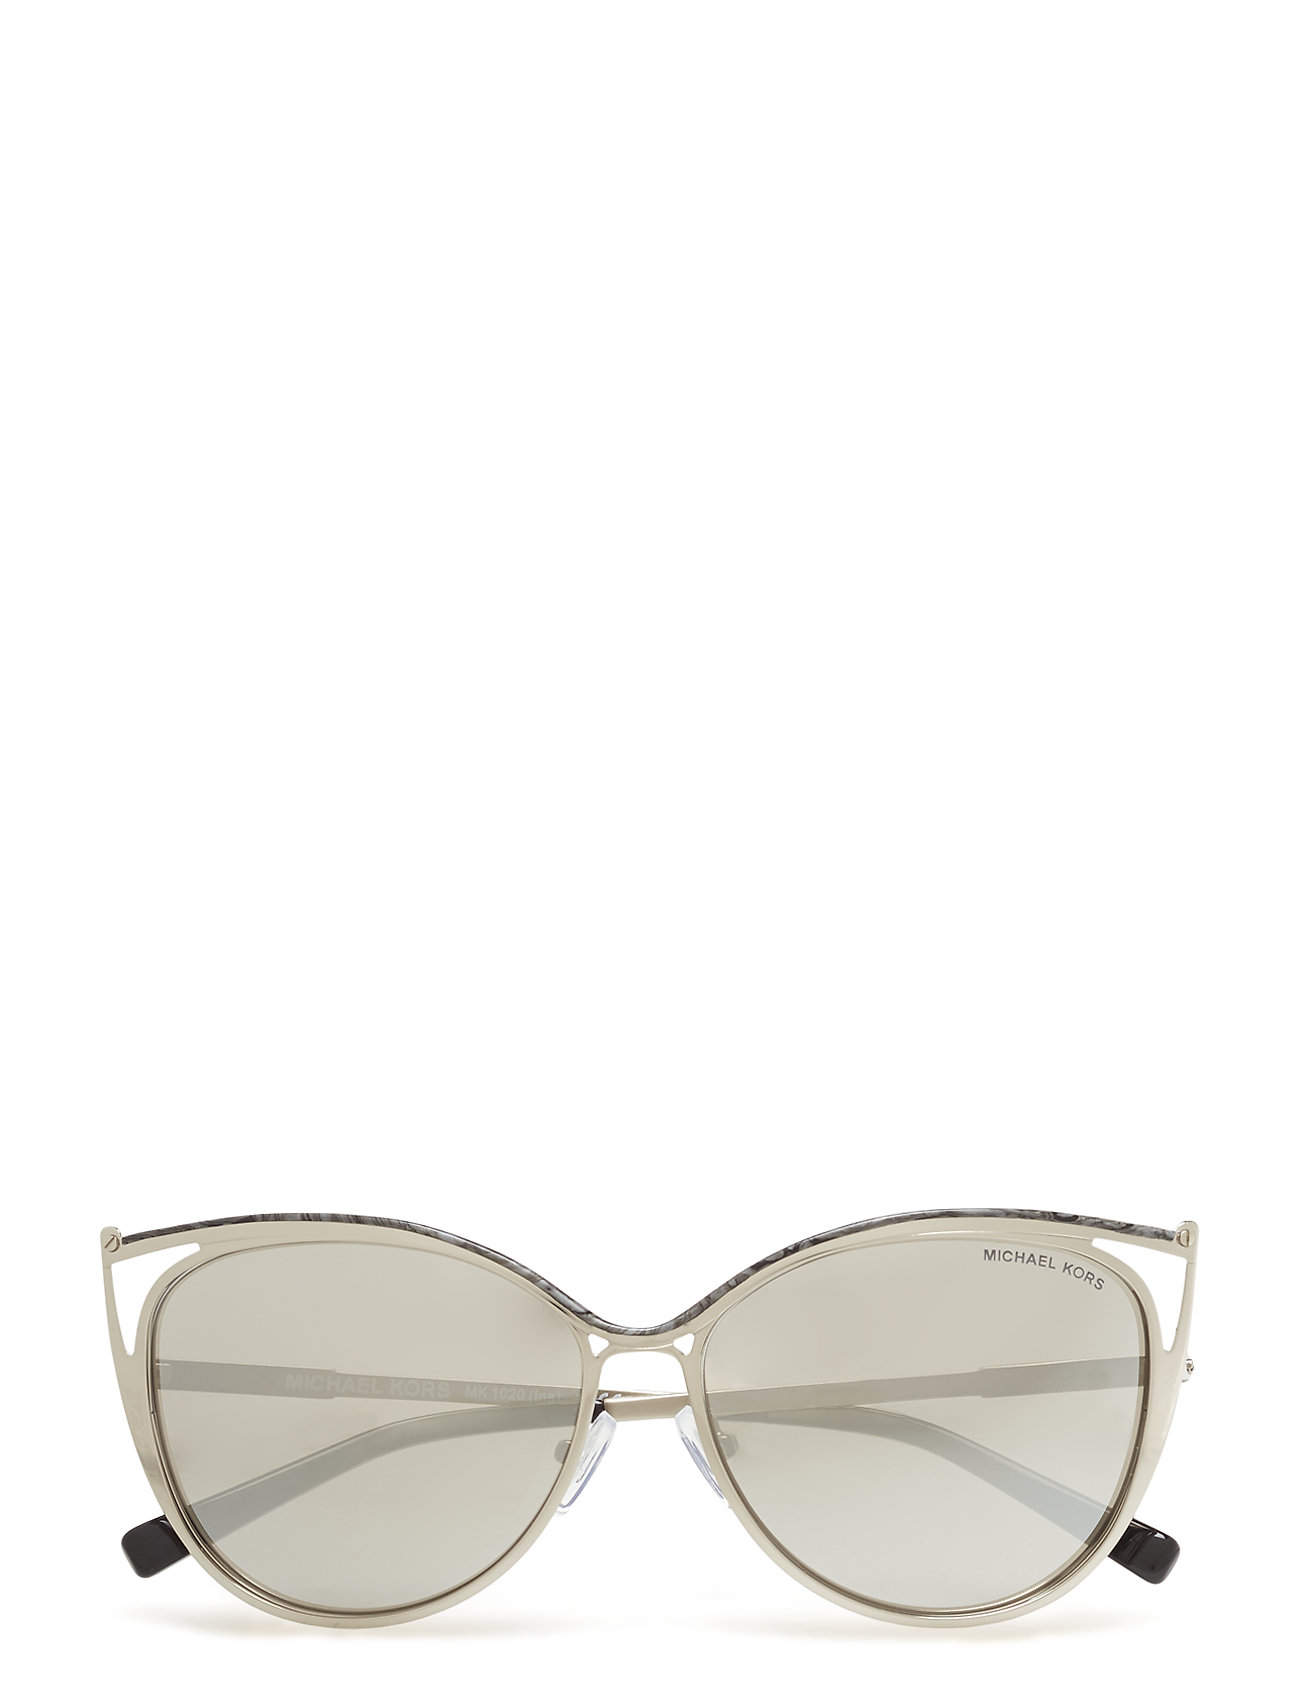 MICHAEL KORS Cat Eye Sonnenbrille Silber MICHAEL KORS SUNGLASSES